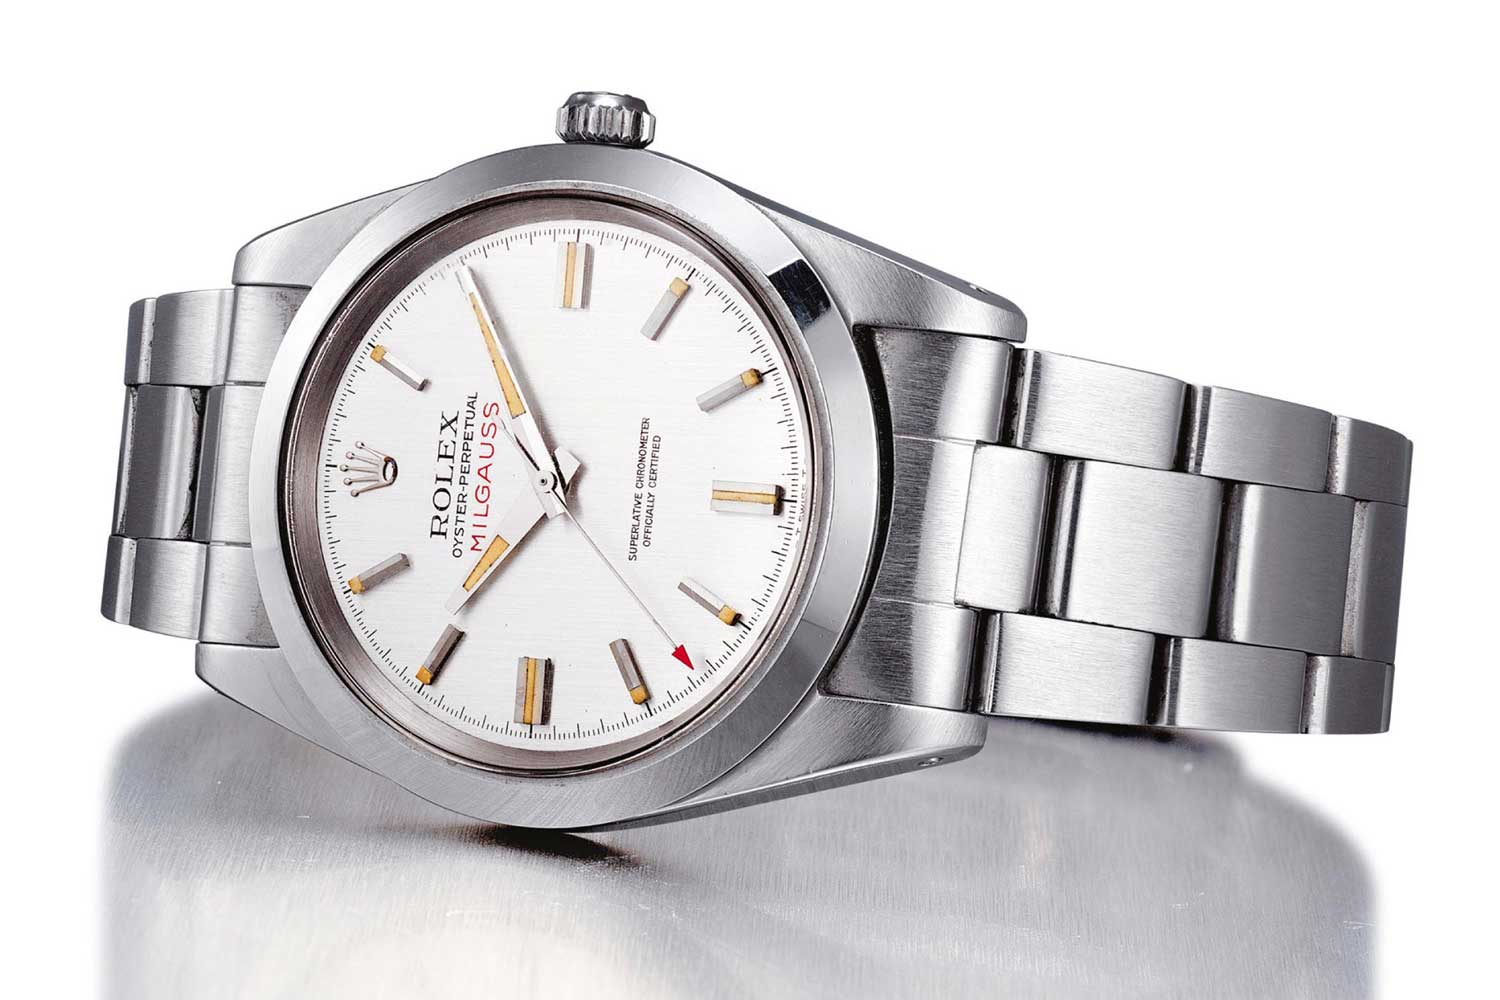 Rolex Milgauss Ref. 1019 with regular production silver dial (Image: Christie's)